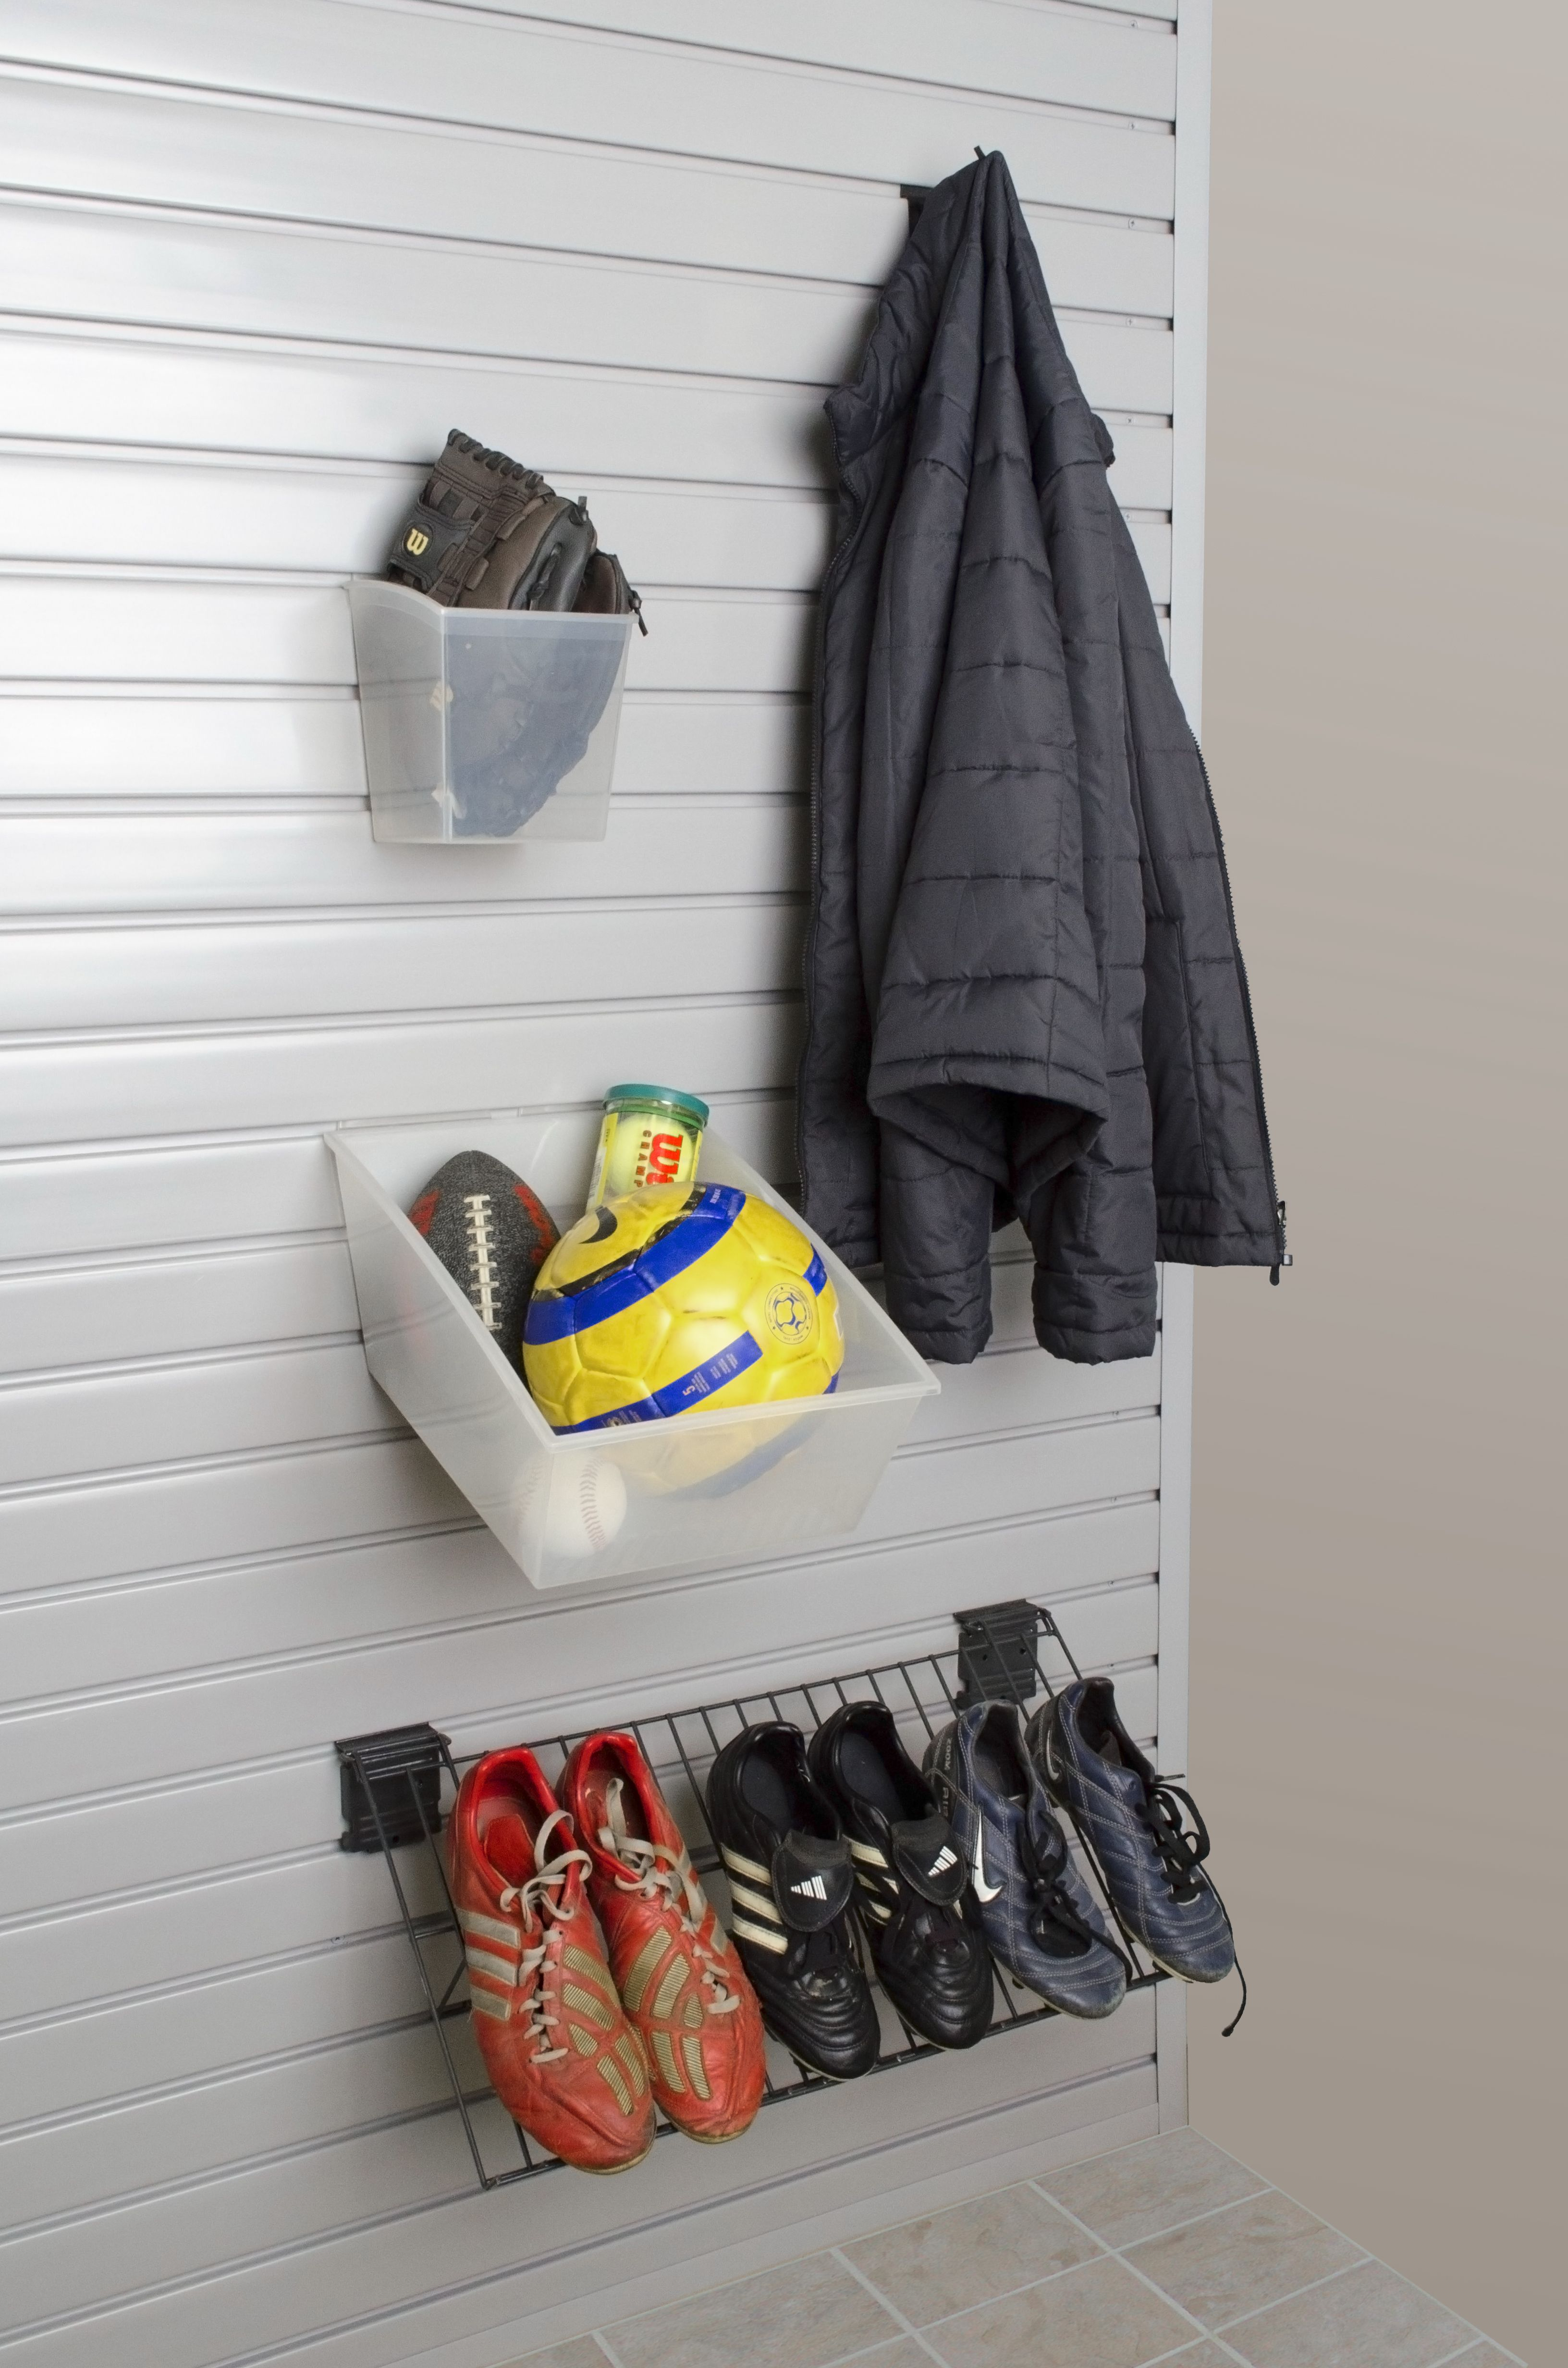 When all of the sports start back up, use the mudroom to make sure all their equipment is right where they need it instead of sprawled across the floor.